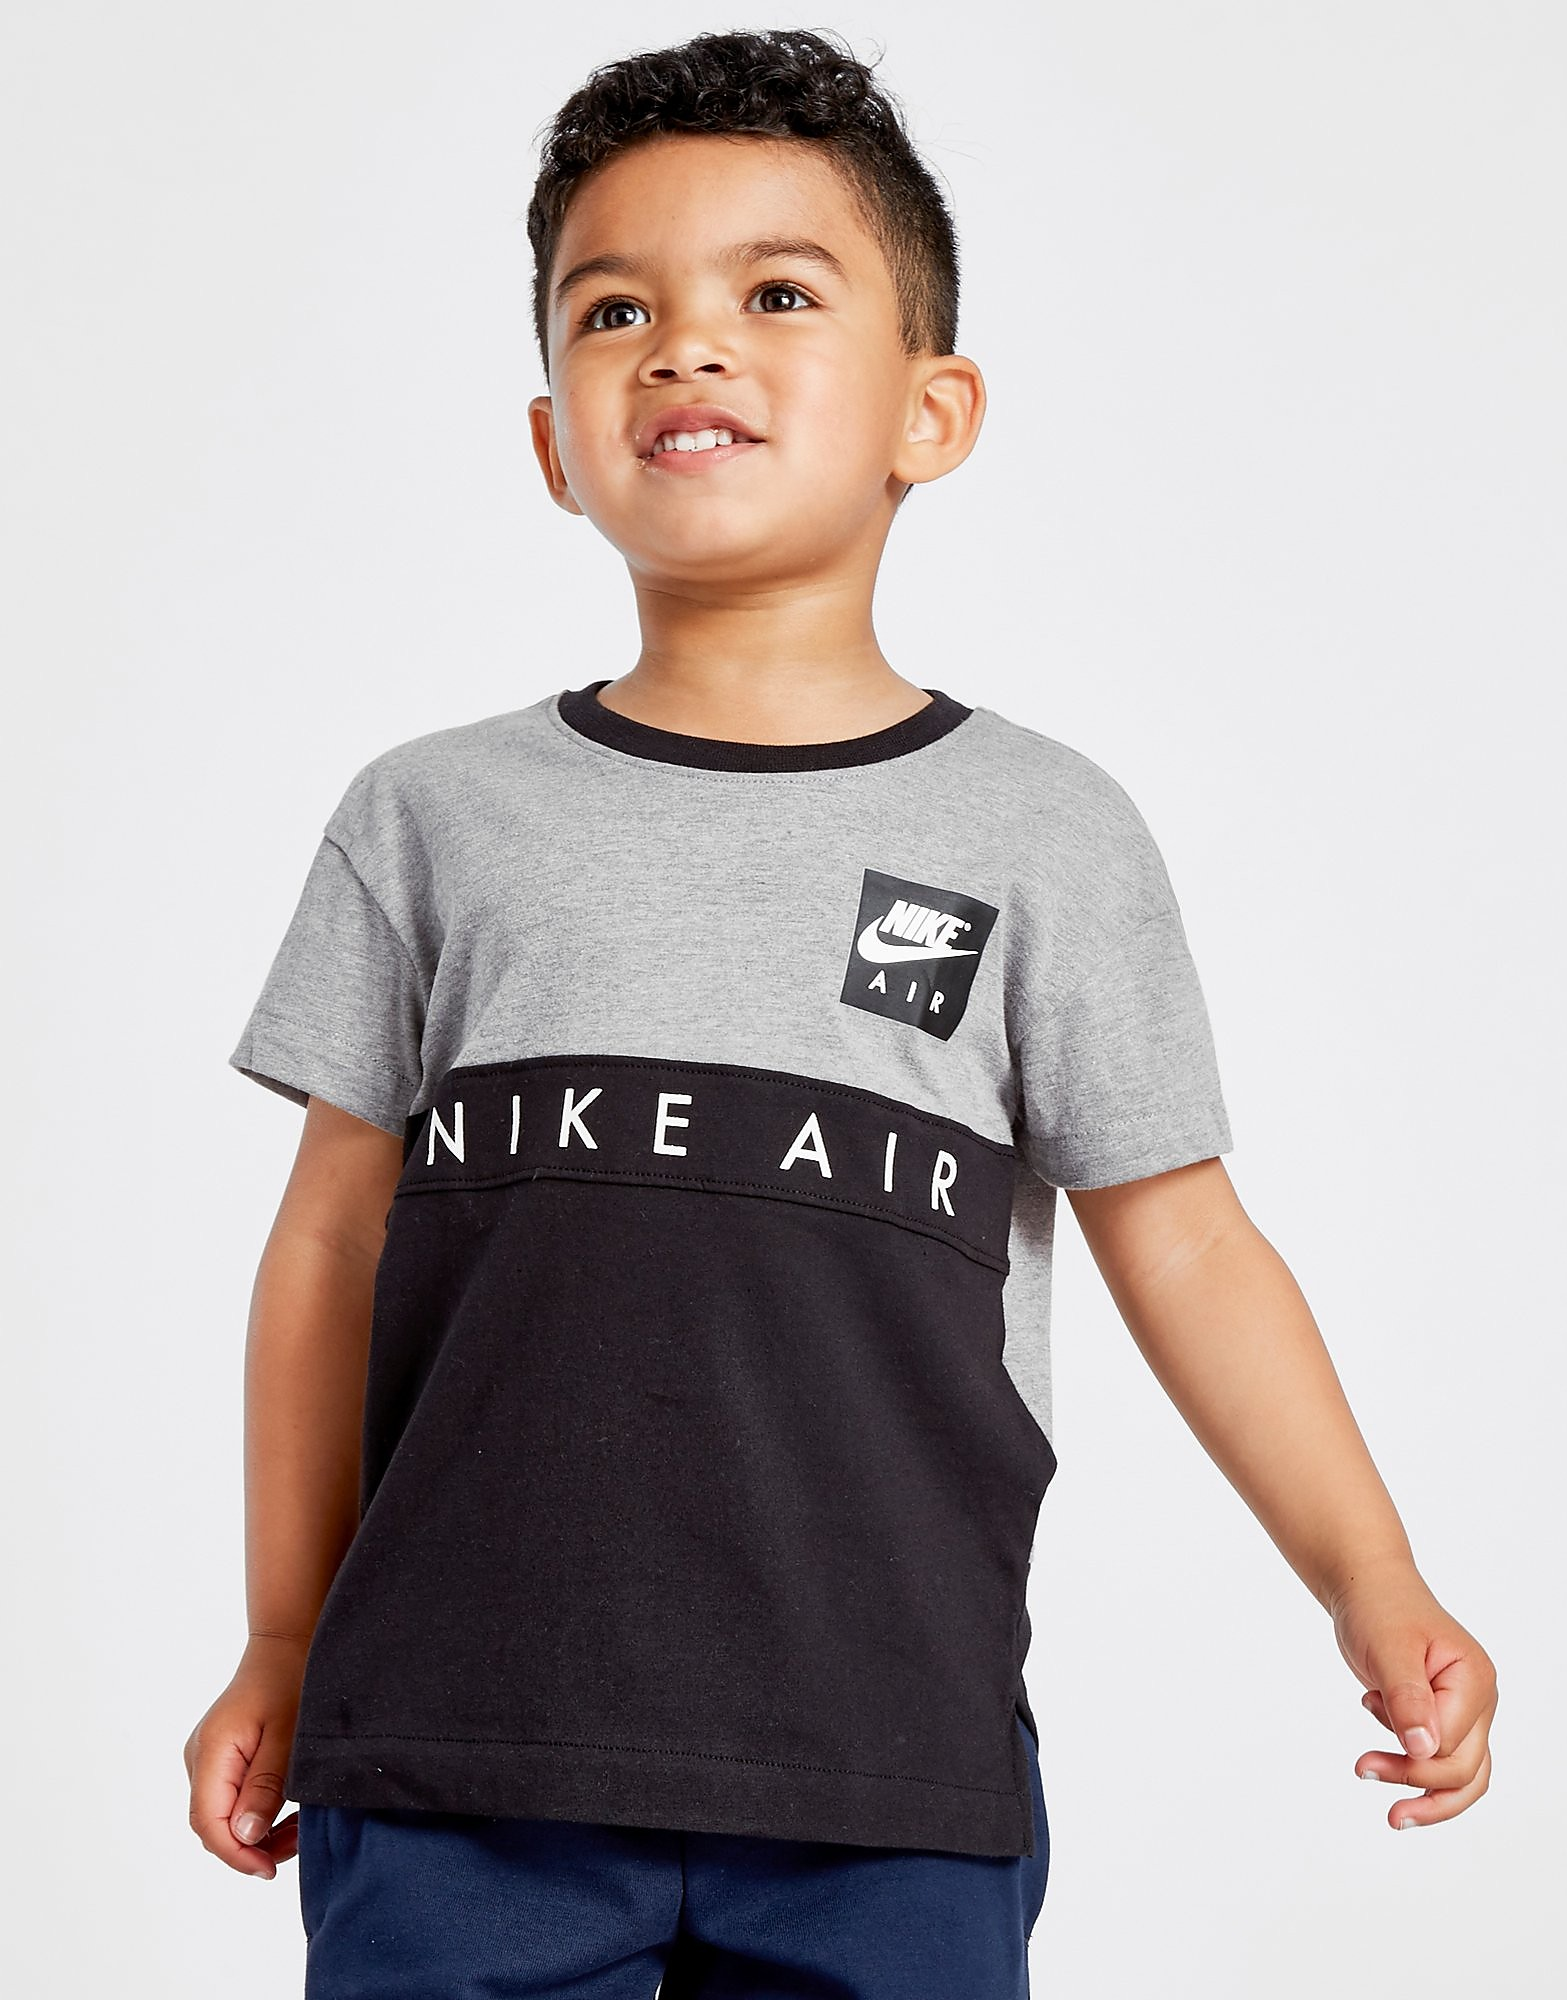 Nike T-shirt Air Colourblock Enfant